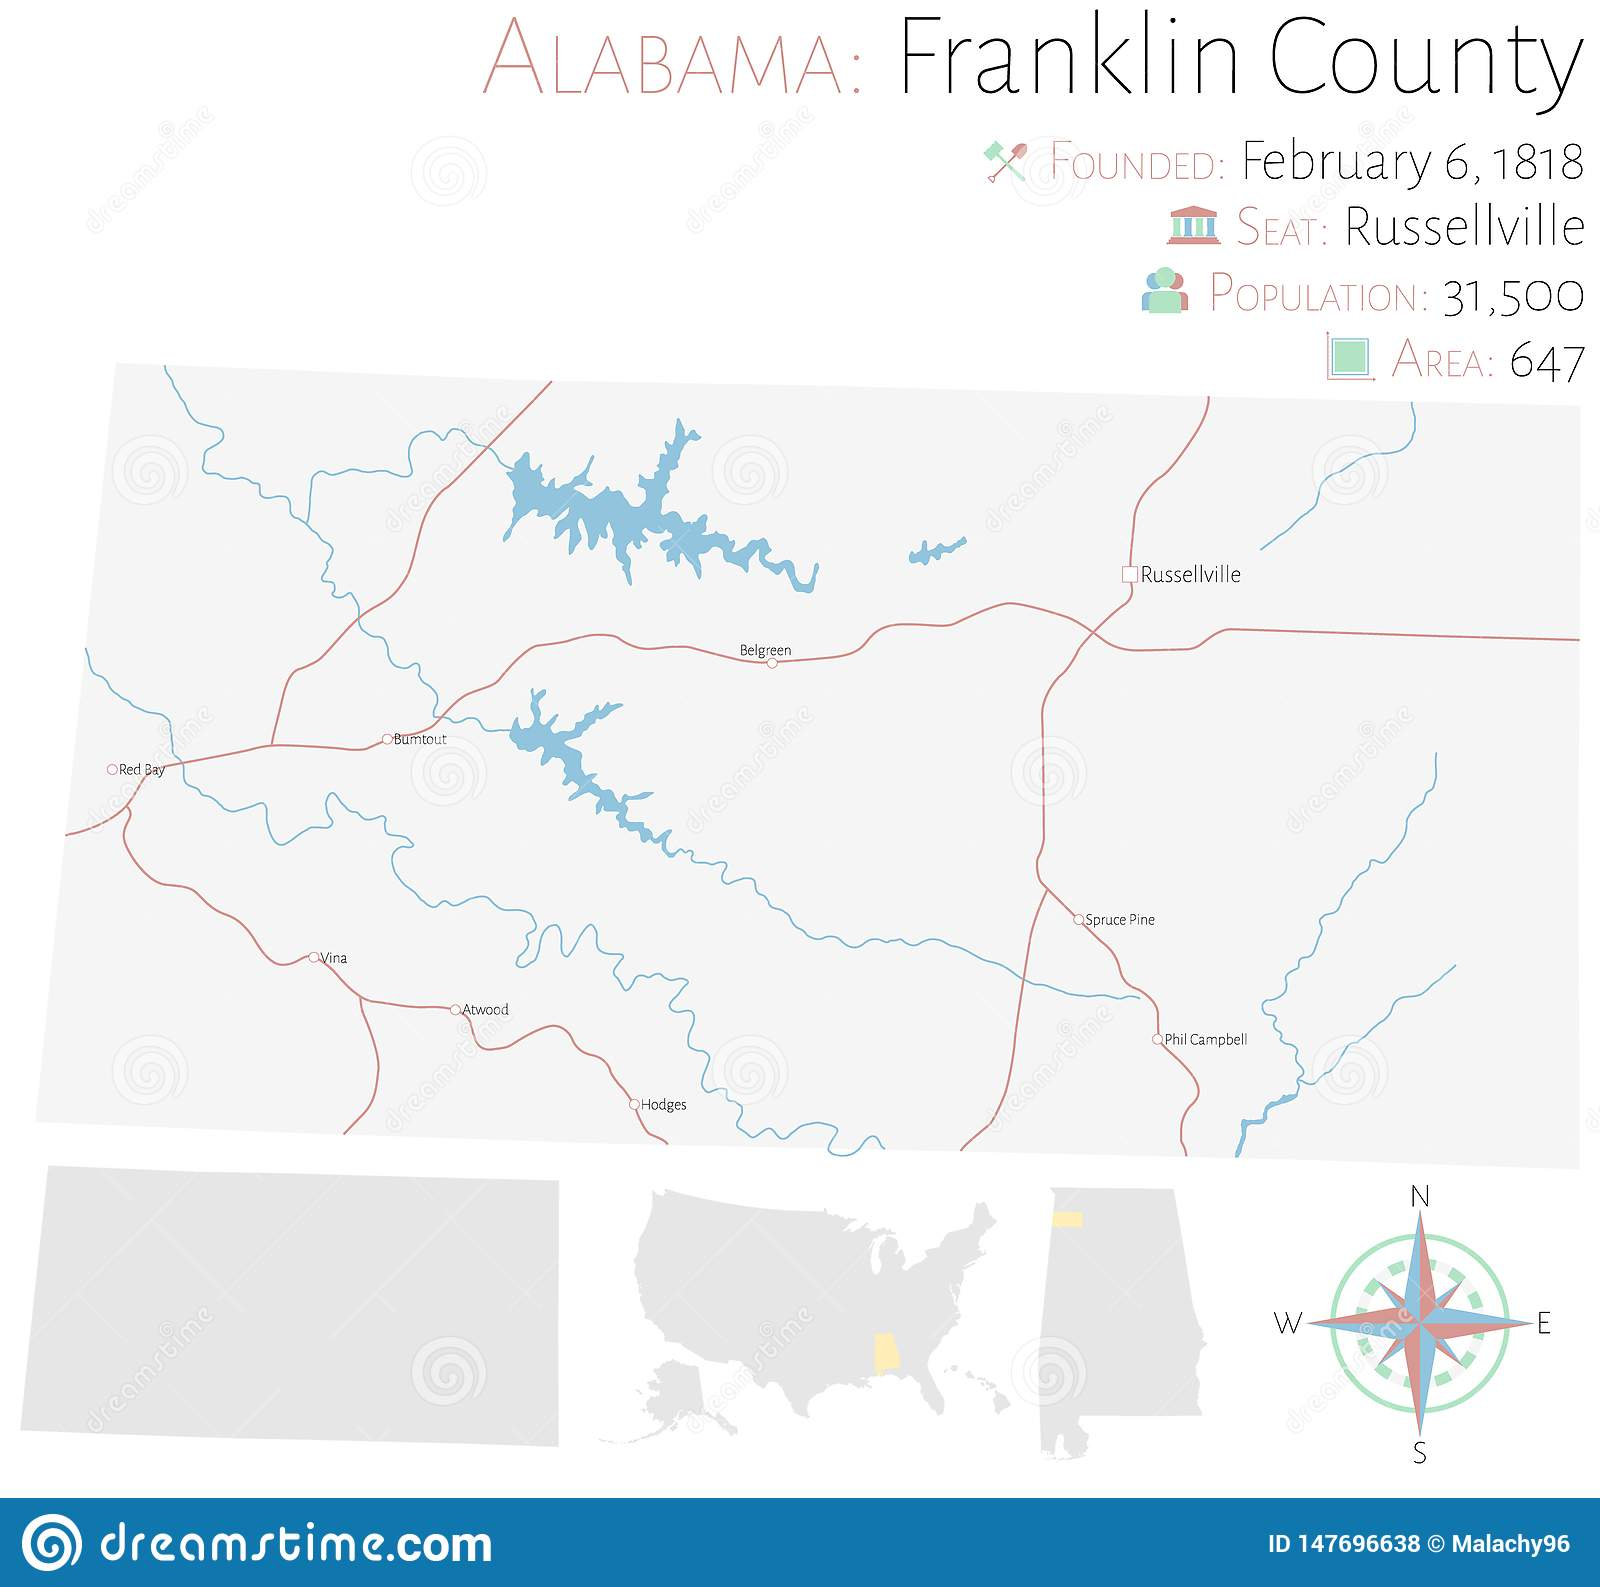 Map of Franklin County in Alabama